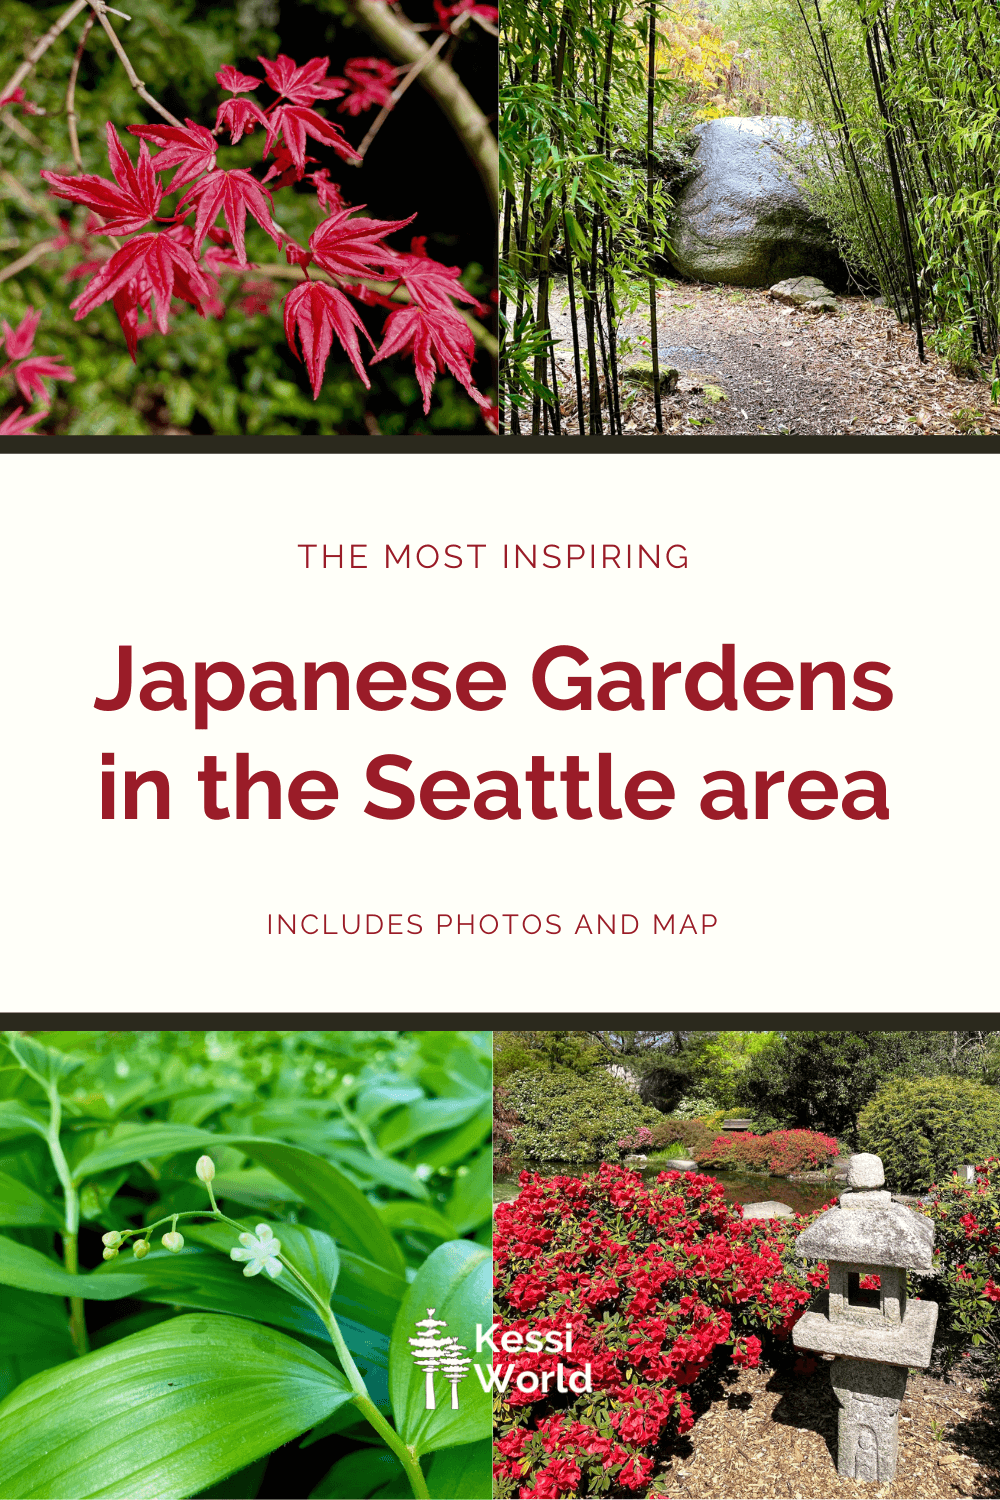 This Pinterest pin showcases four small square photos that highlight the most inspiring Japanese Gardens in Seattle.